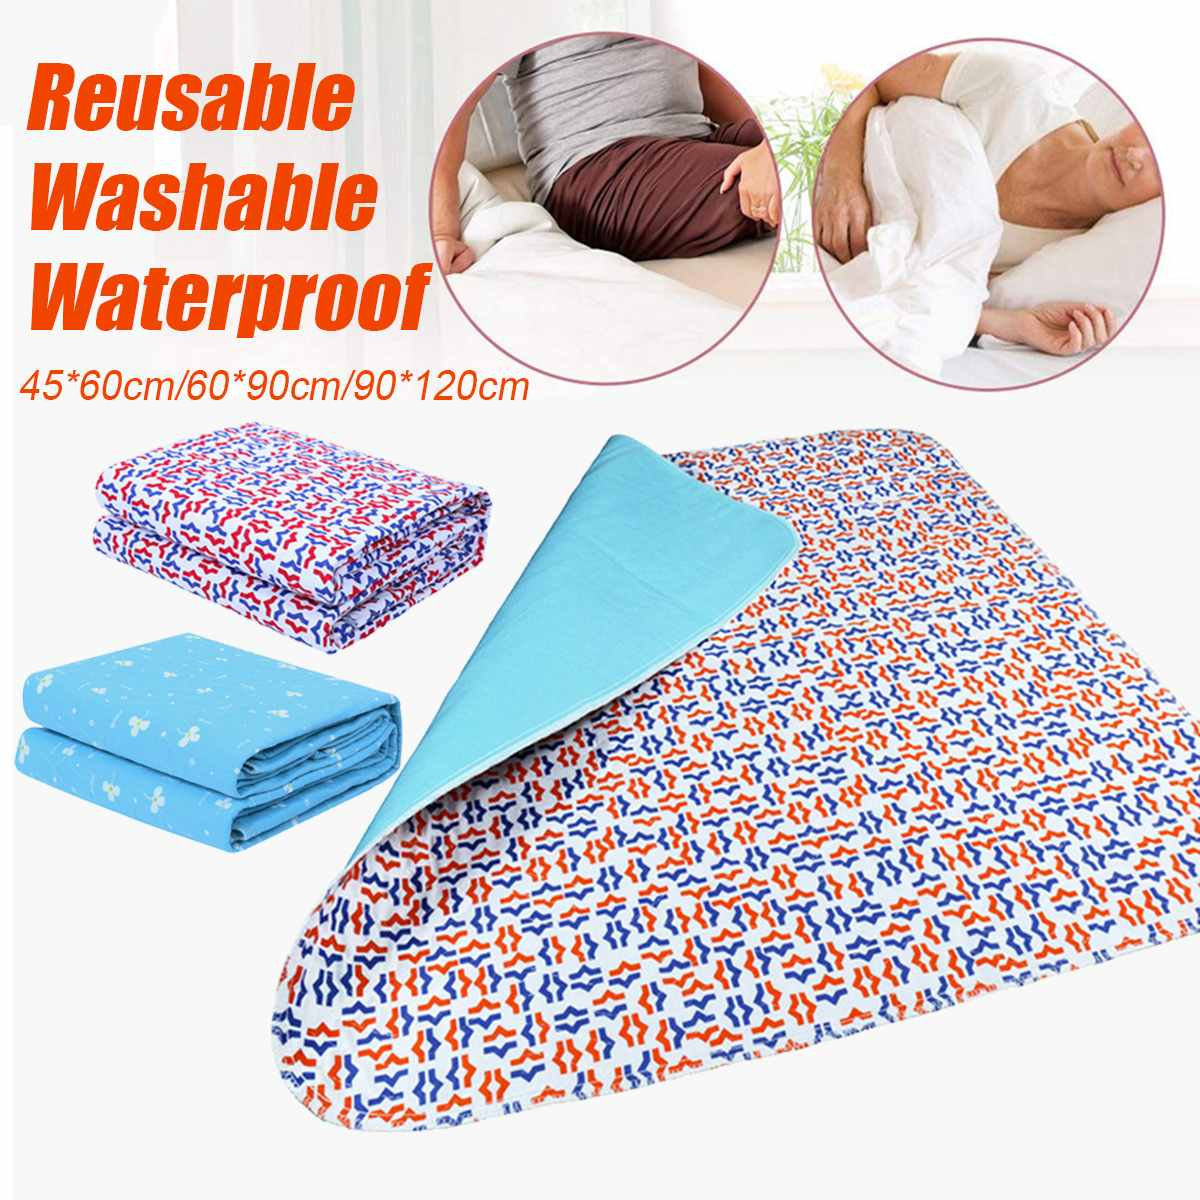 3-layer Baby Underpad Waterproof Changing Mat Infant Urine Pad Mattress Sheet Protector Bedding Incontinence Kids Adult Supplies